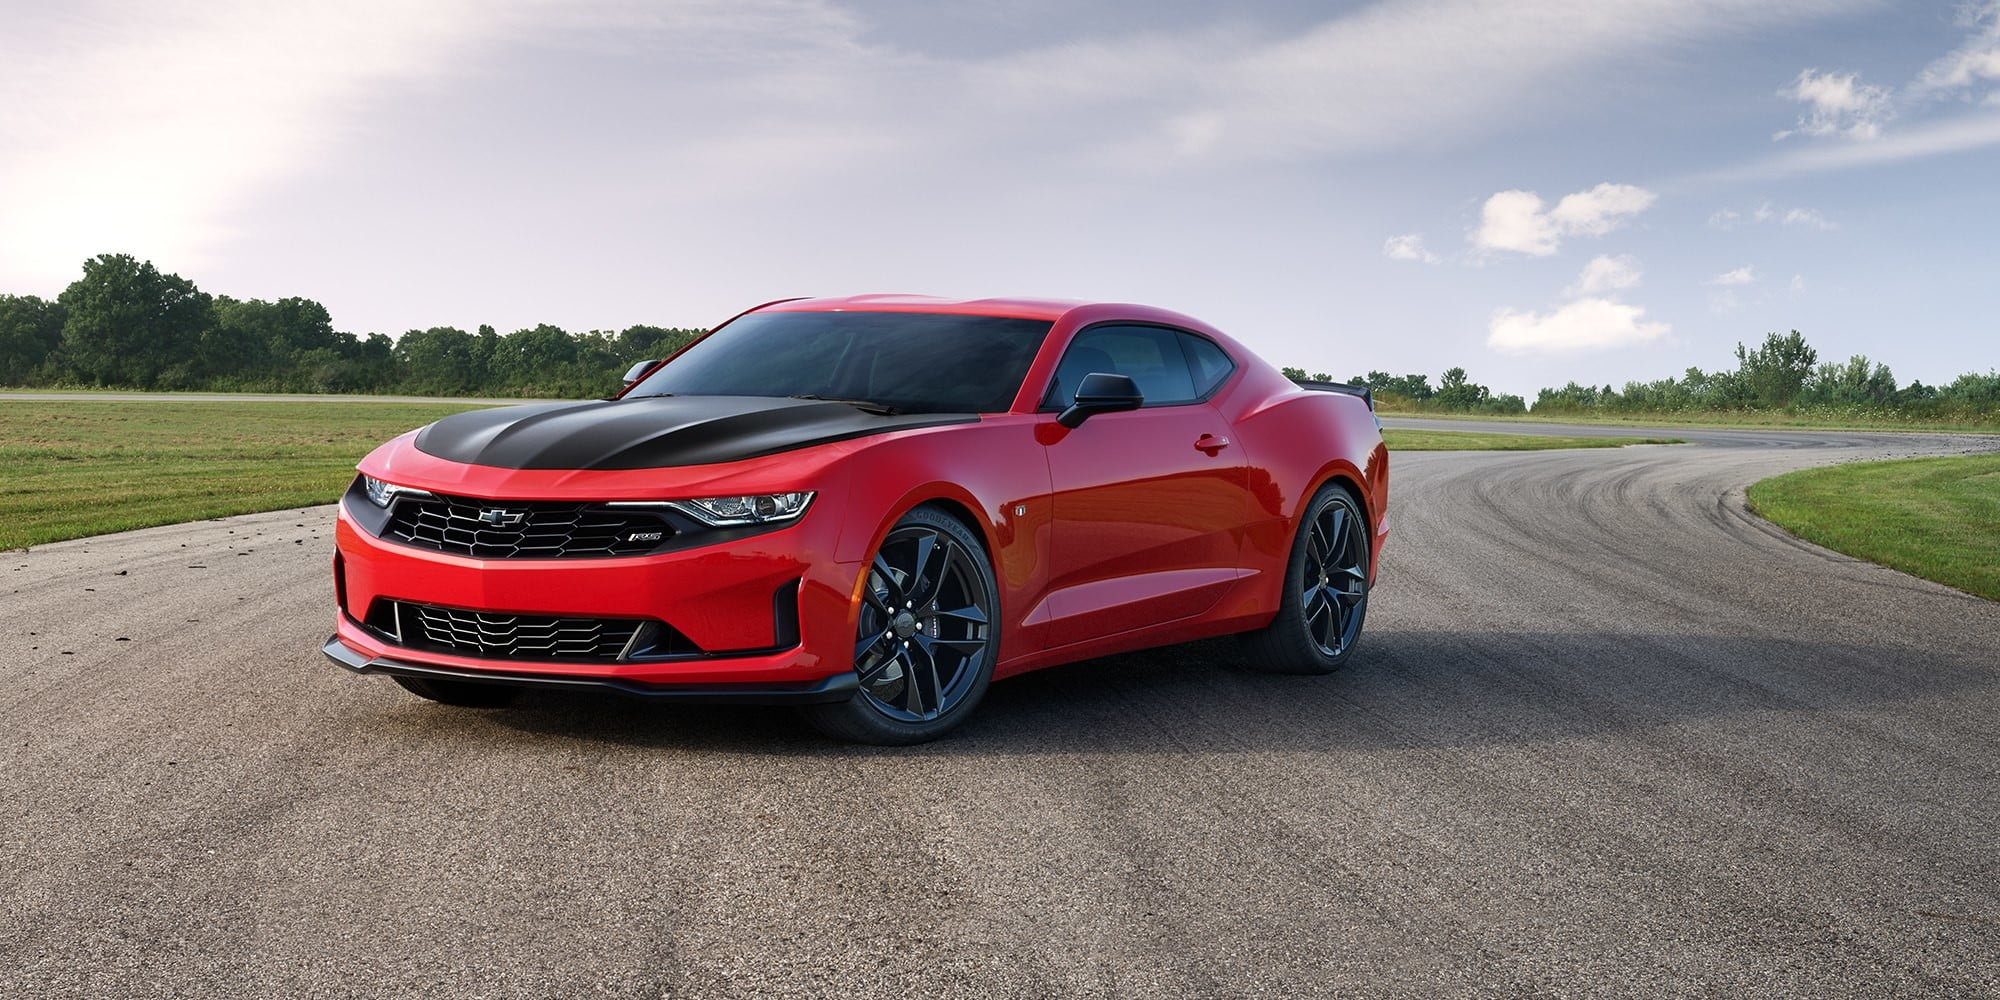 Camaro Vs Mustang Price Specs Performance And More Digital Trends